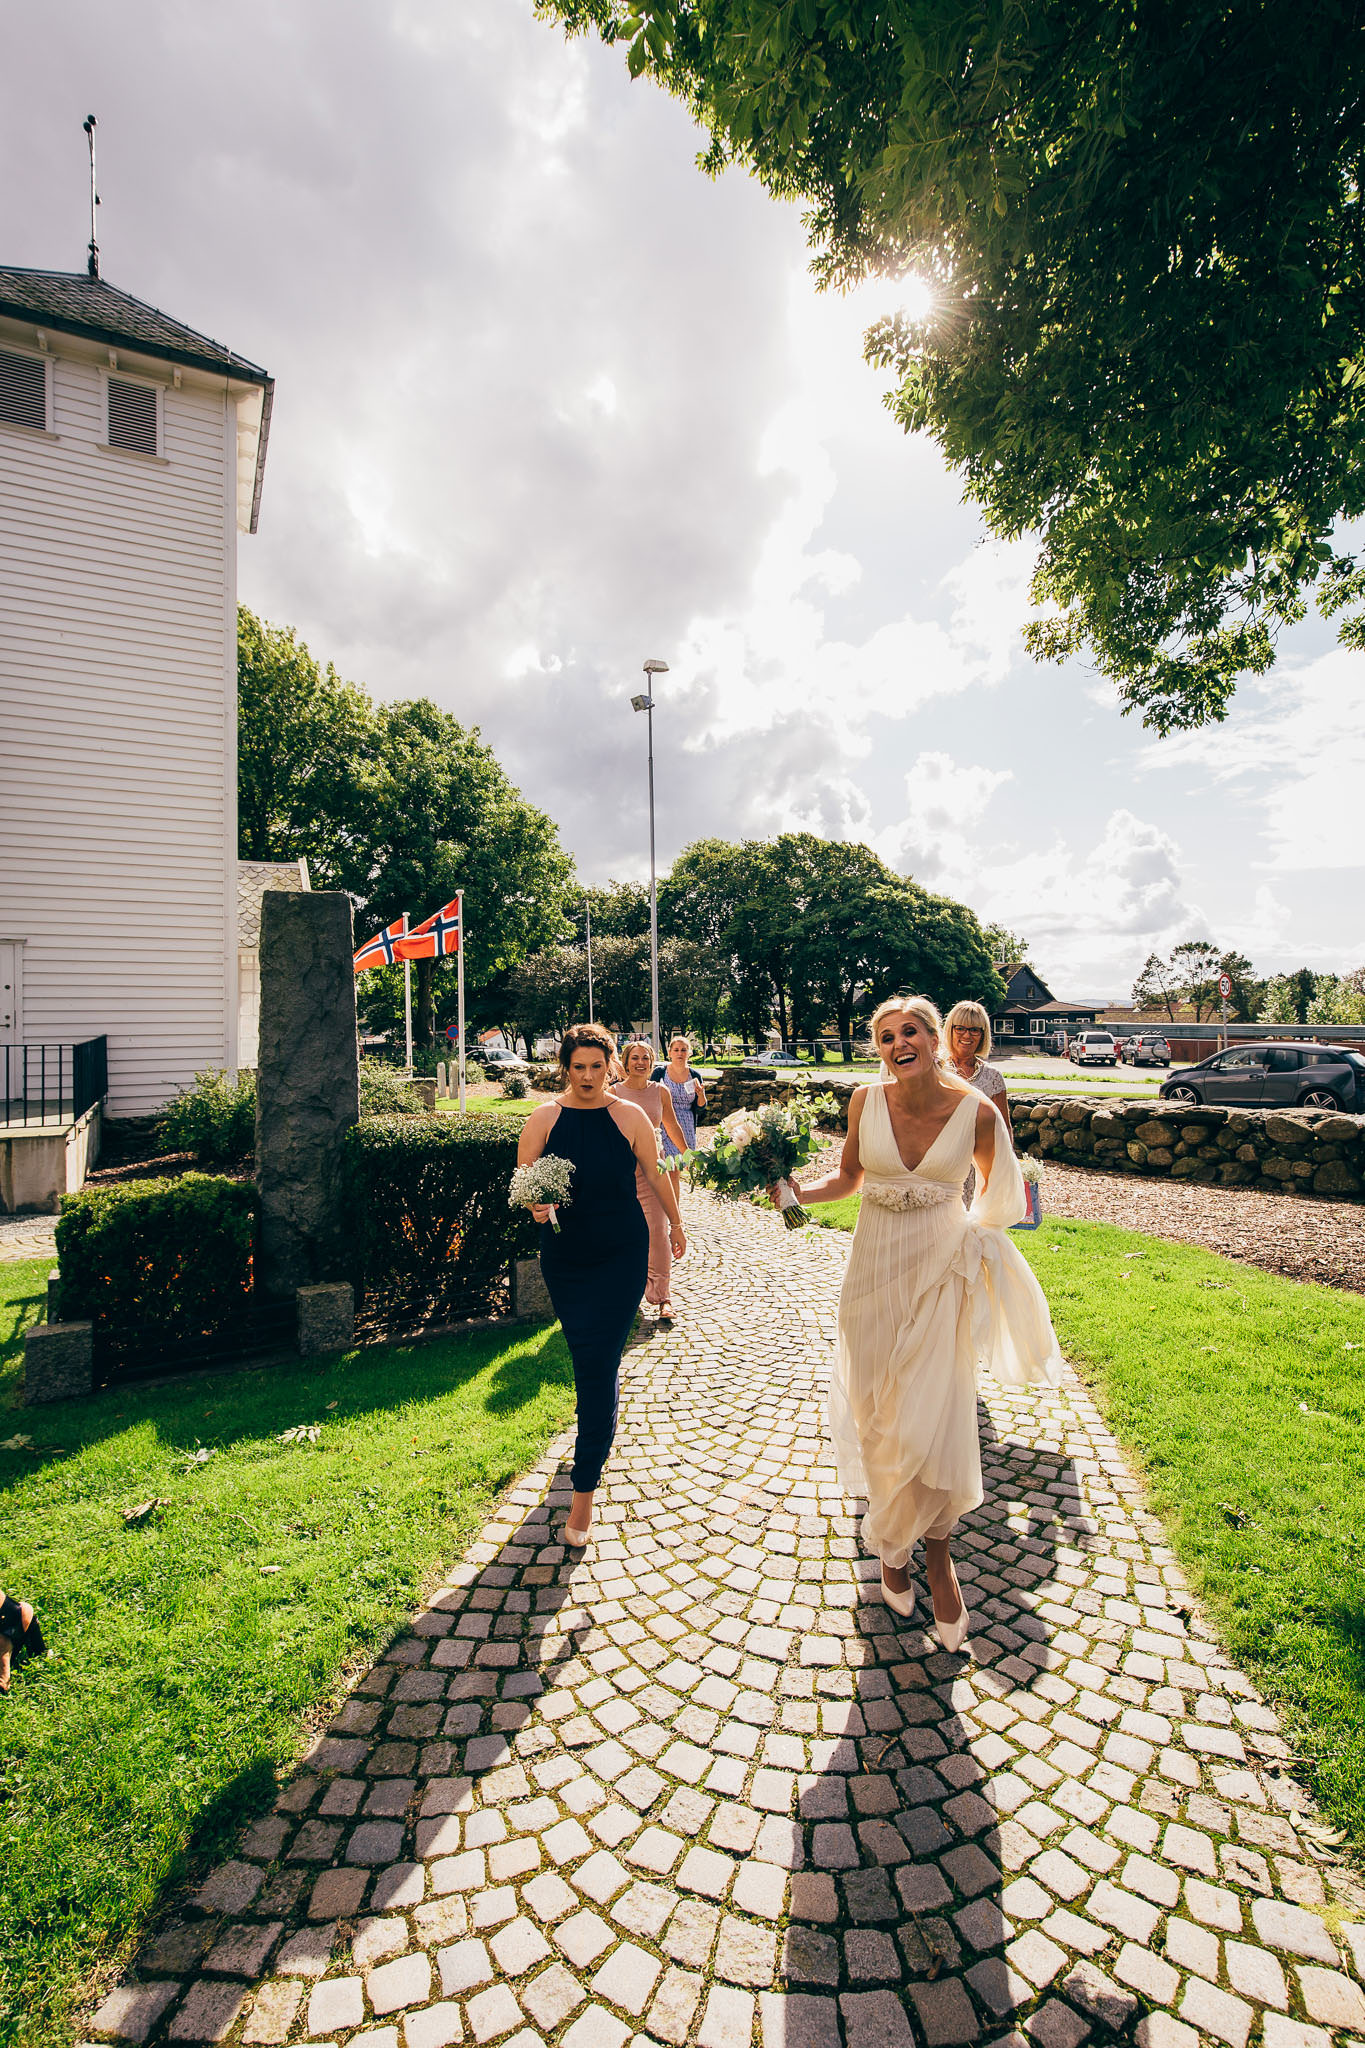 Norway+wedding+photographer+elopement+pre+wedding+Rogaland+bryllupsfotograf+Casey+Arneson-193.jpg